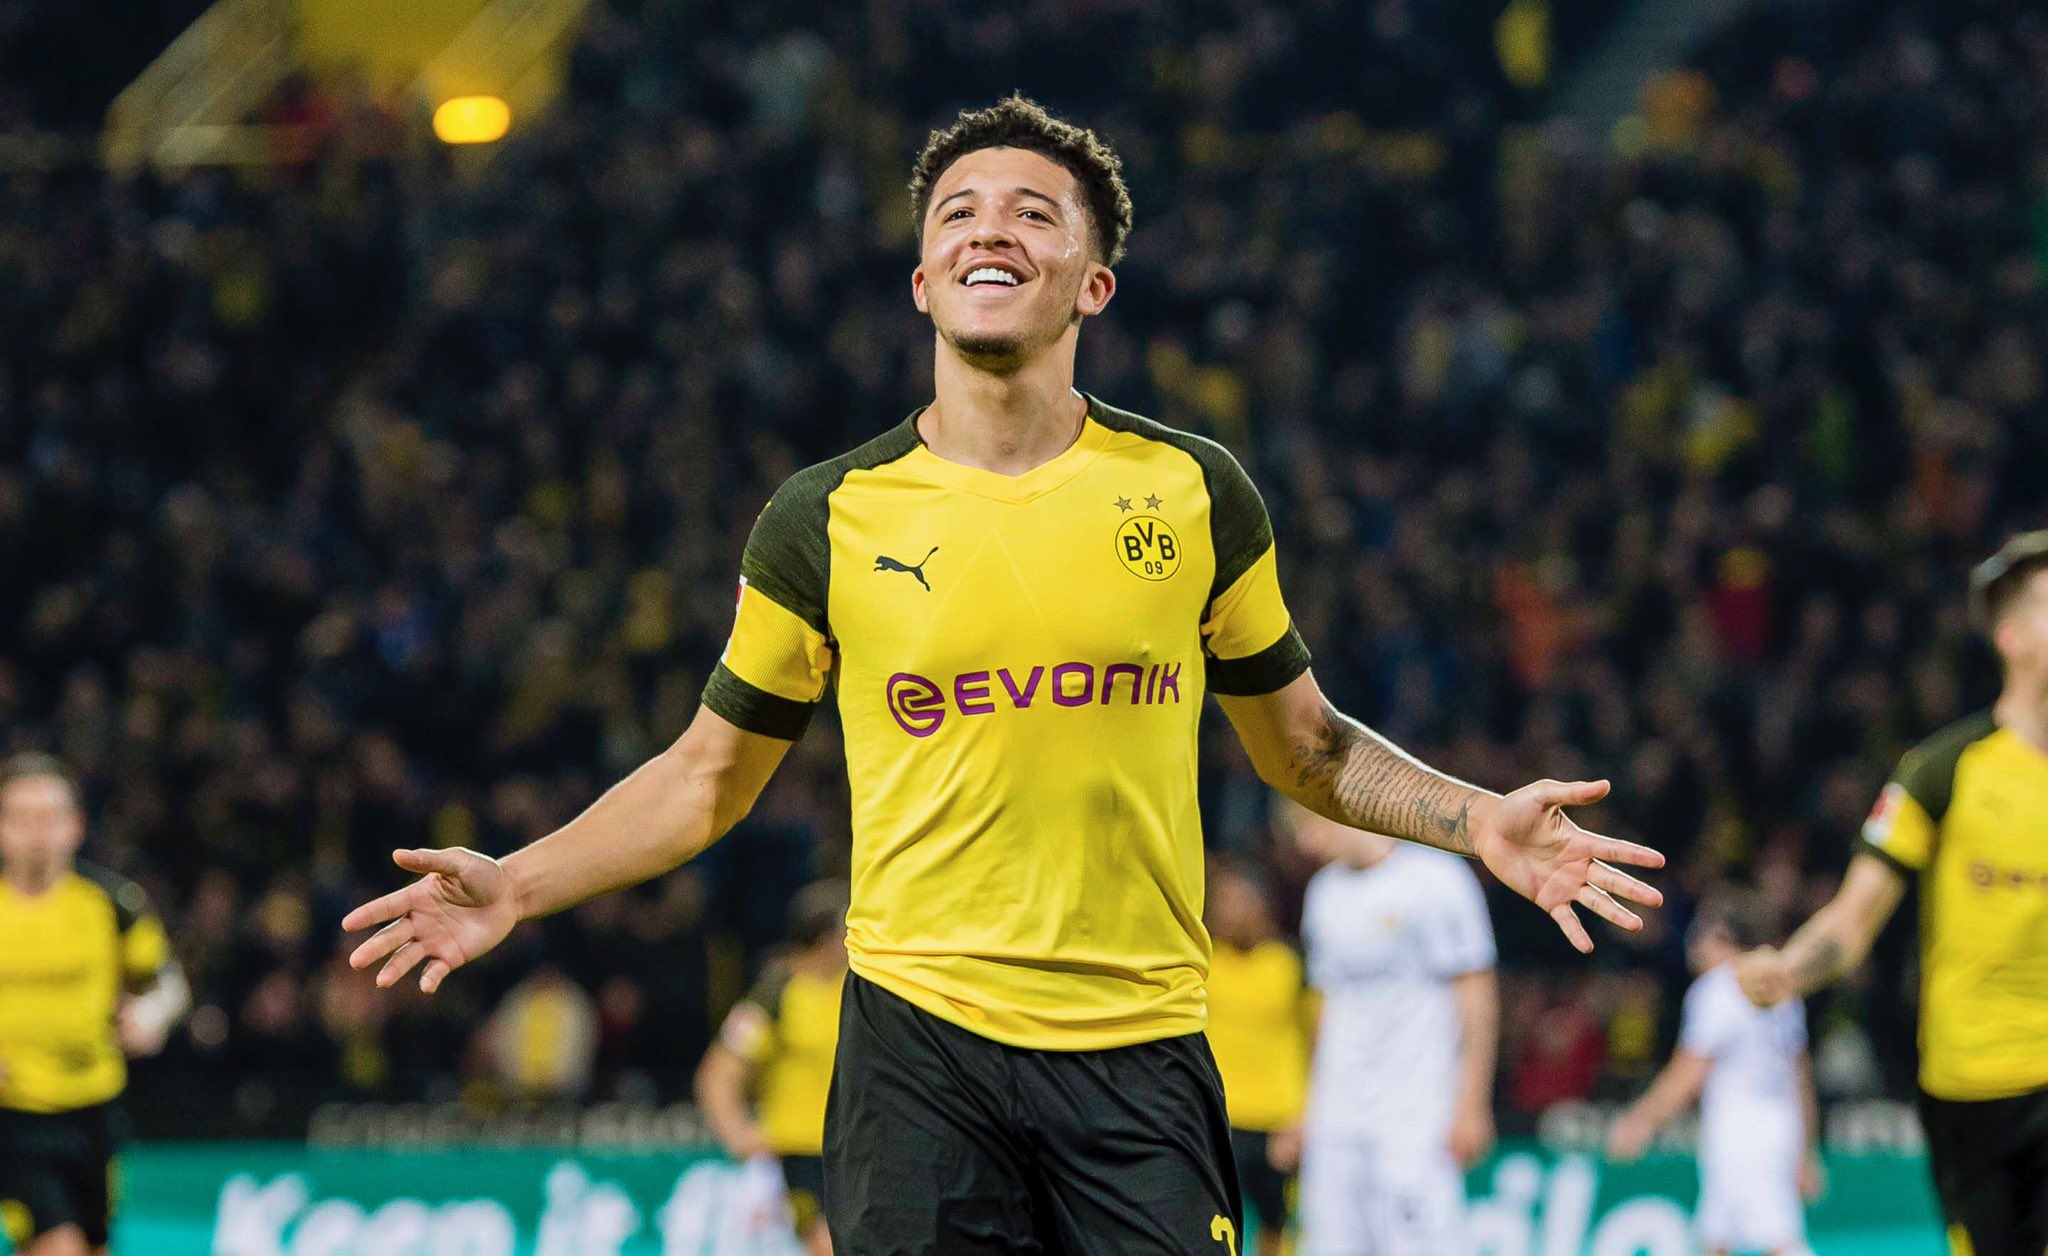 Dortmund's English midfielder Jadon Sancho celebrates scoring their team's second goal during the German first division Bundesliga football match Borussia Dortmund vs Bayer Leverkusen on February 24, 2019 in Dortmund. (Photo by Patrik STOLLARZ / AFP) / DFL REGULATIONS PROHIBIT ANY USE OF PHOTOGRAPHS AS IMAGE SEQUENCES AND/OR QUASI-VIDEO (Photo credit should read PATRIK STOLLARZ/AFP/Getty Images)